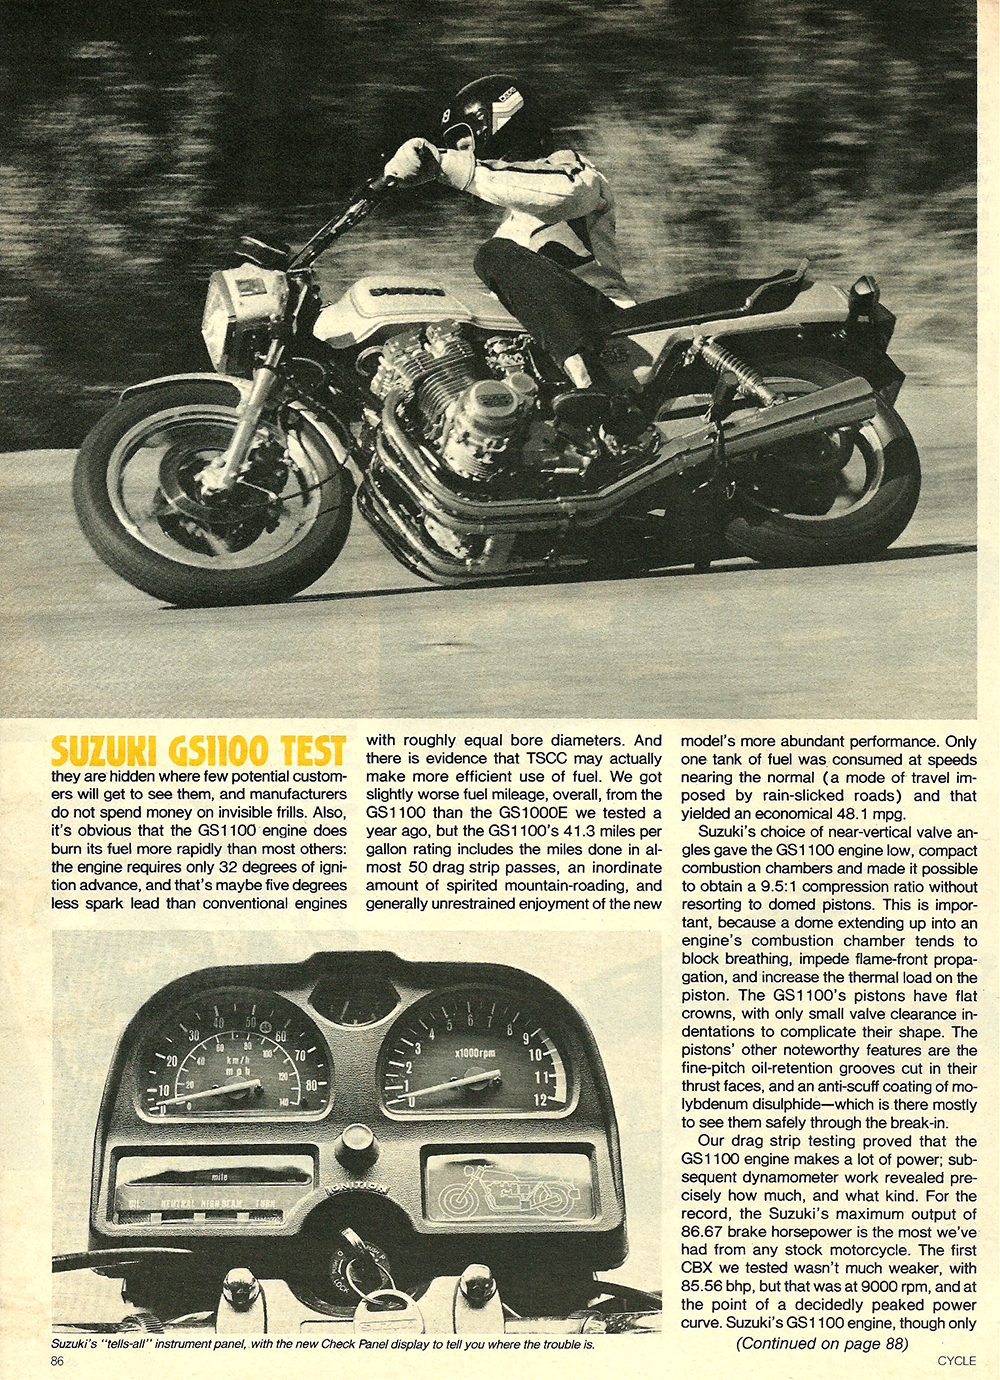 1980 Suzuki GS1100 ET road test 07.jpg